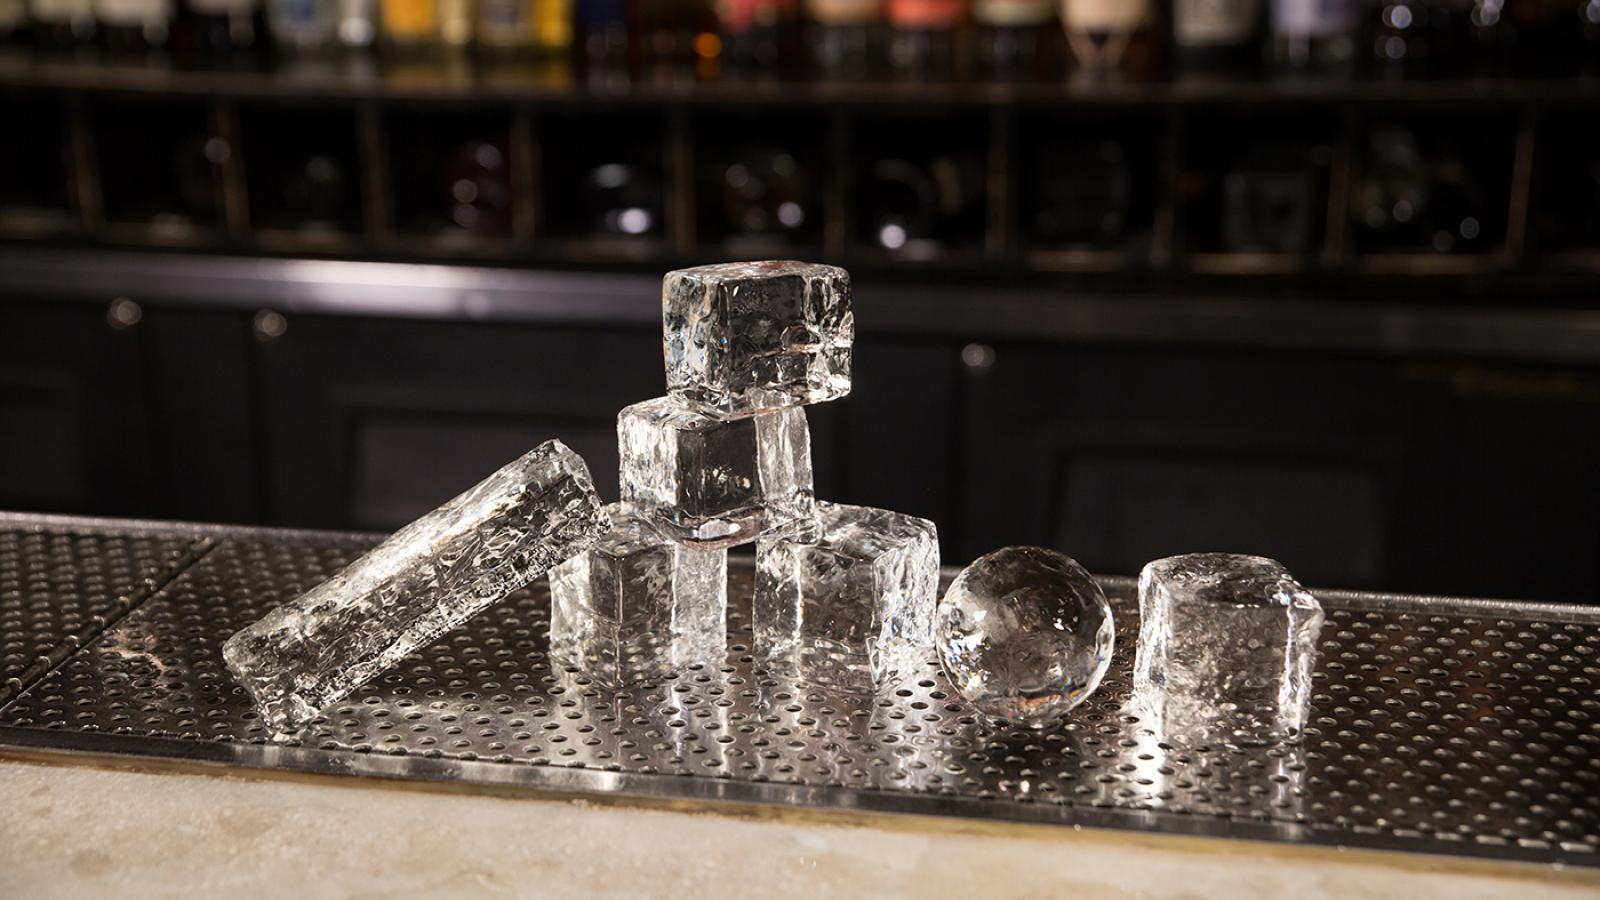 Kickstarter: Introducing Phantom, the complete Clear Ice System